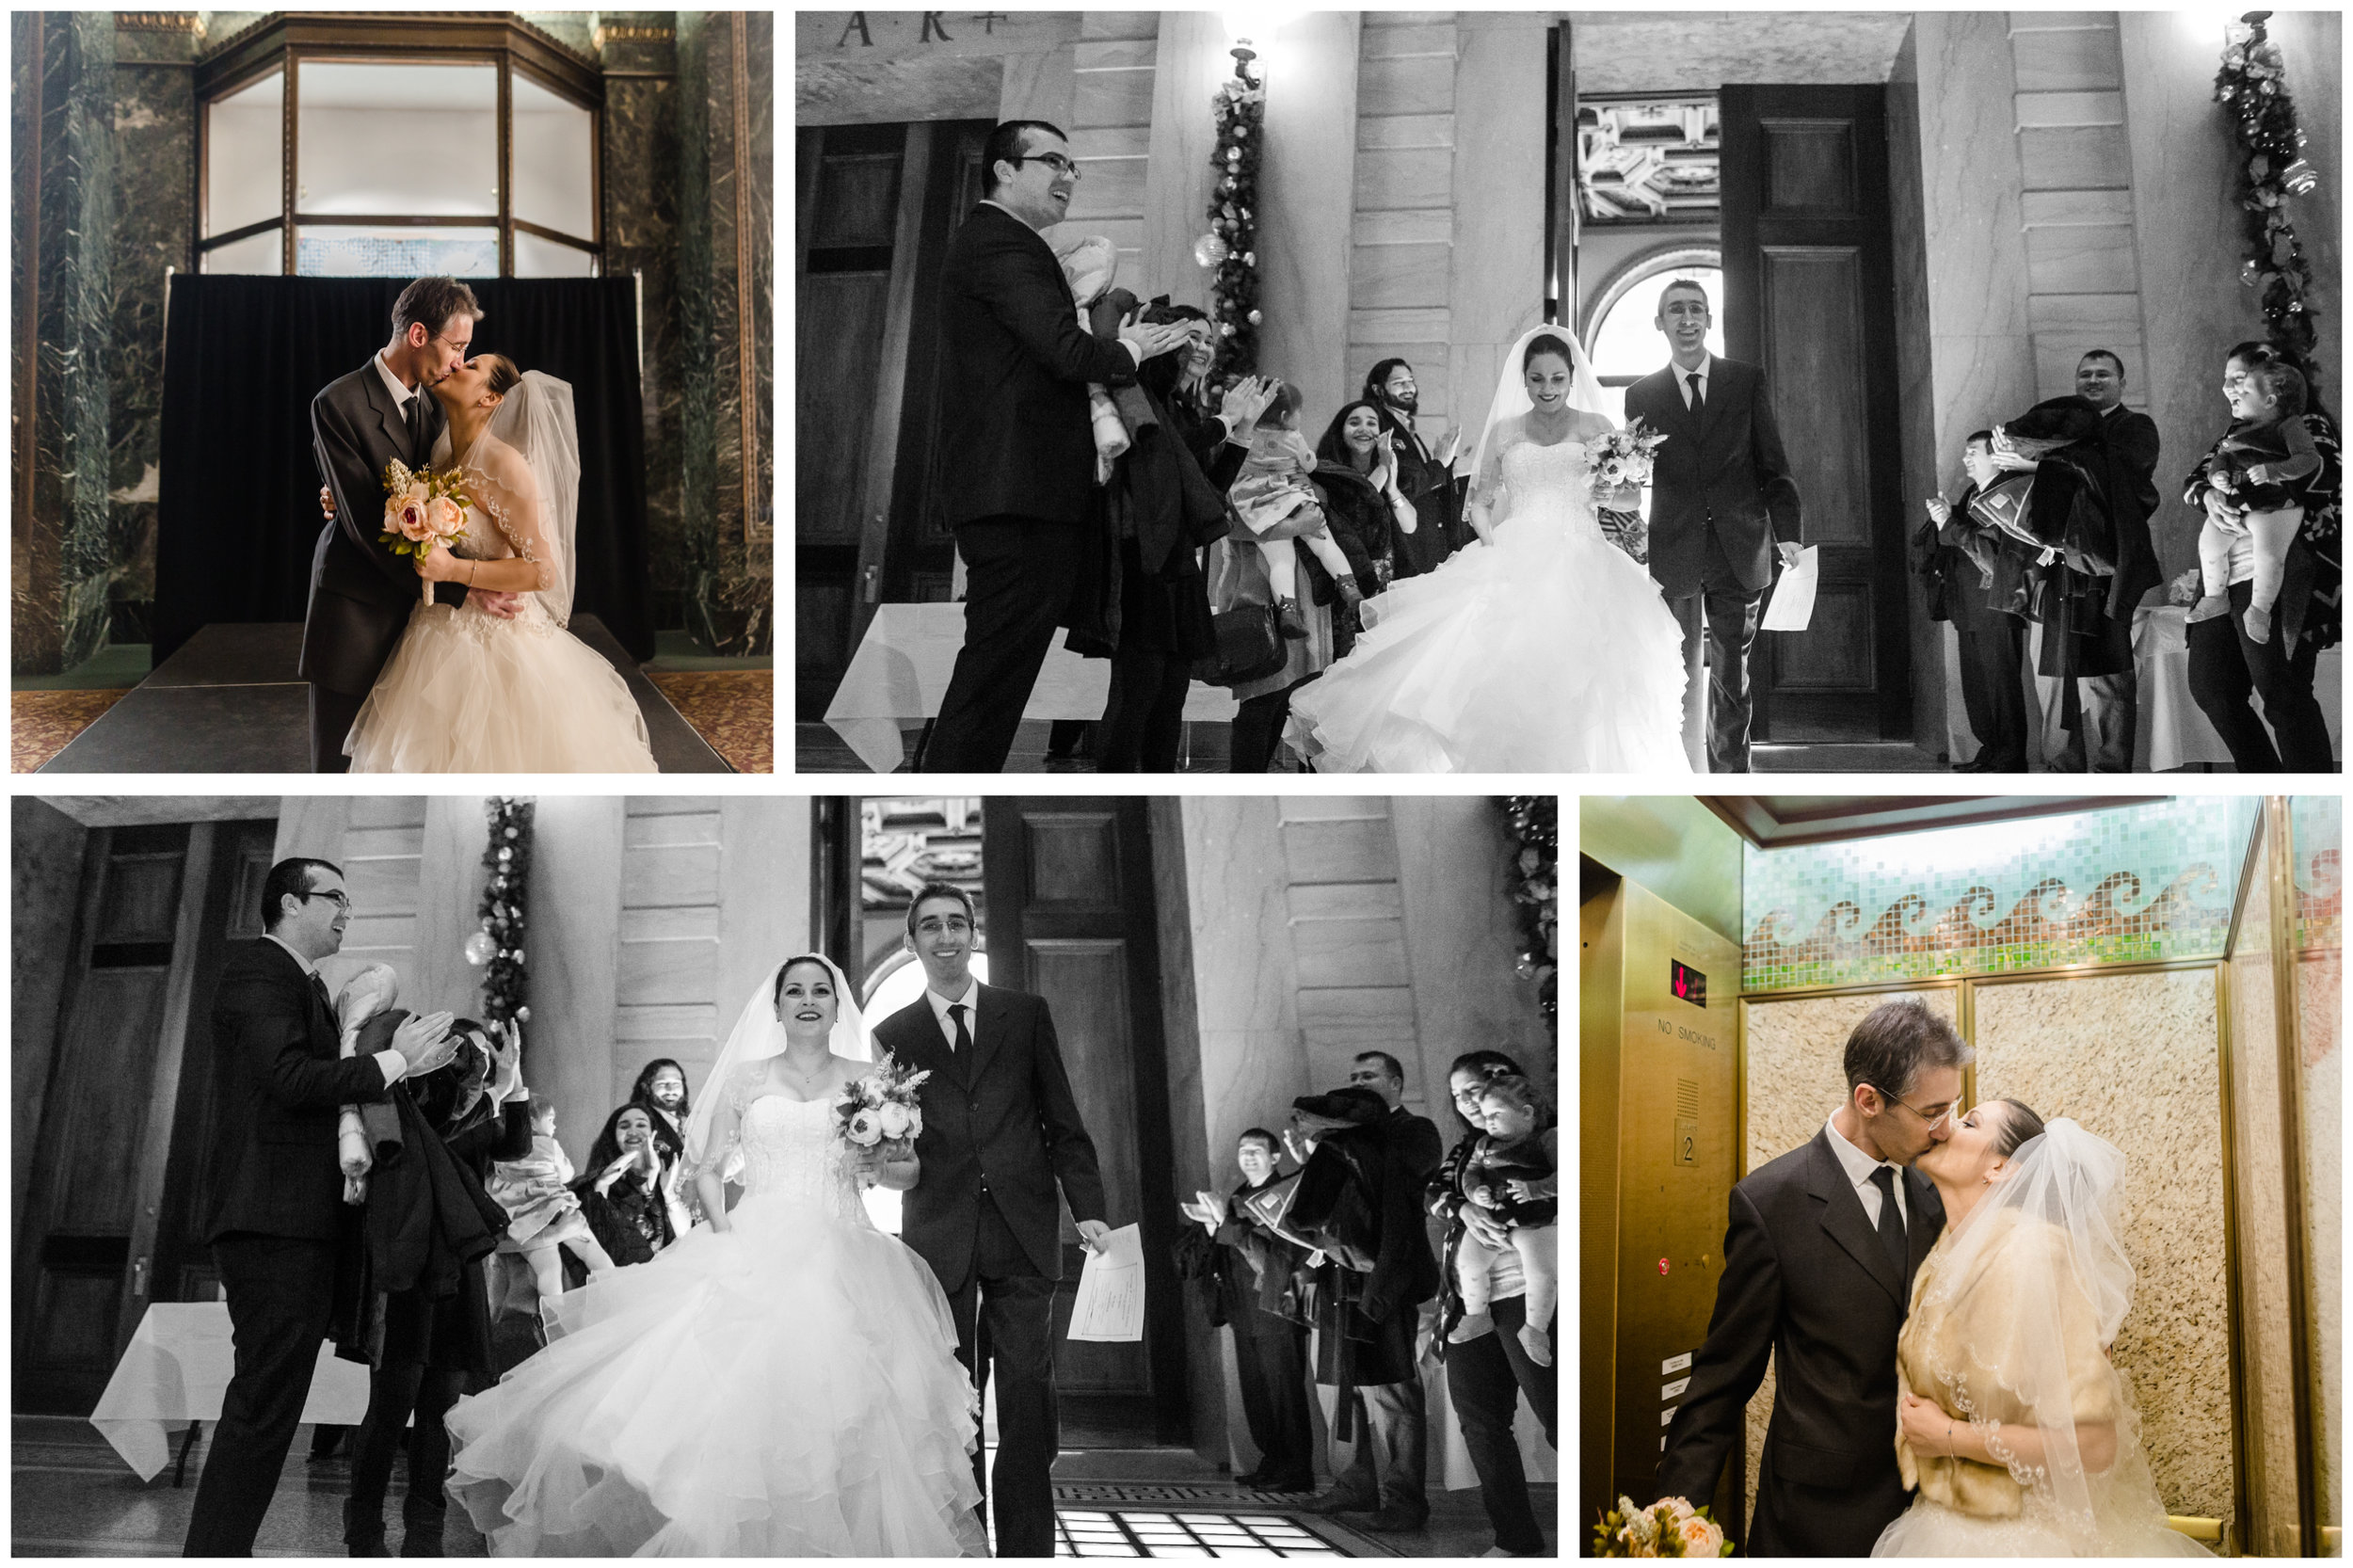 jenny grimm photography chicago cultural center wedding elopement marriage